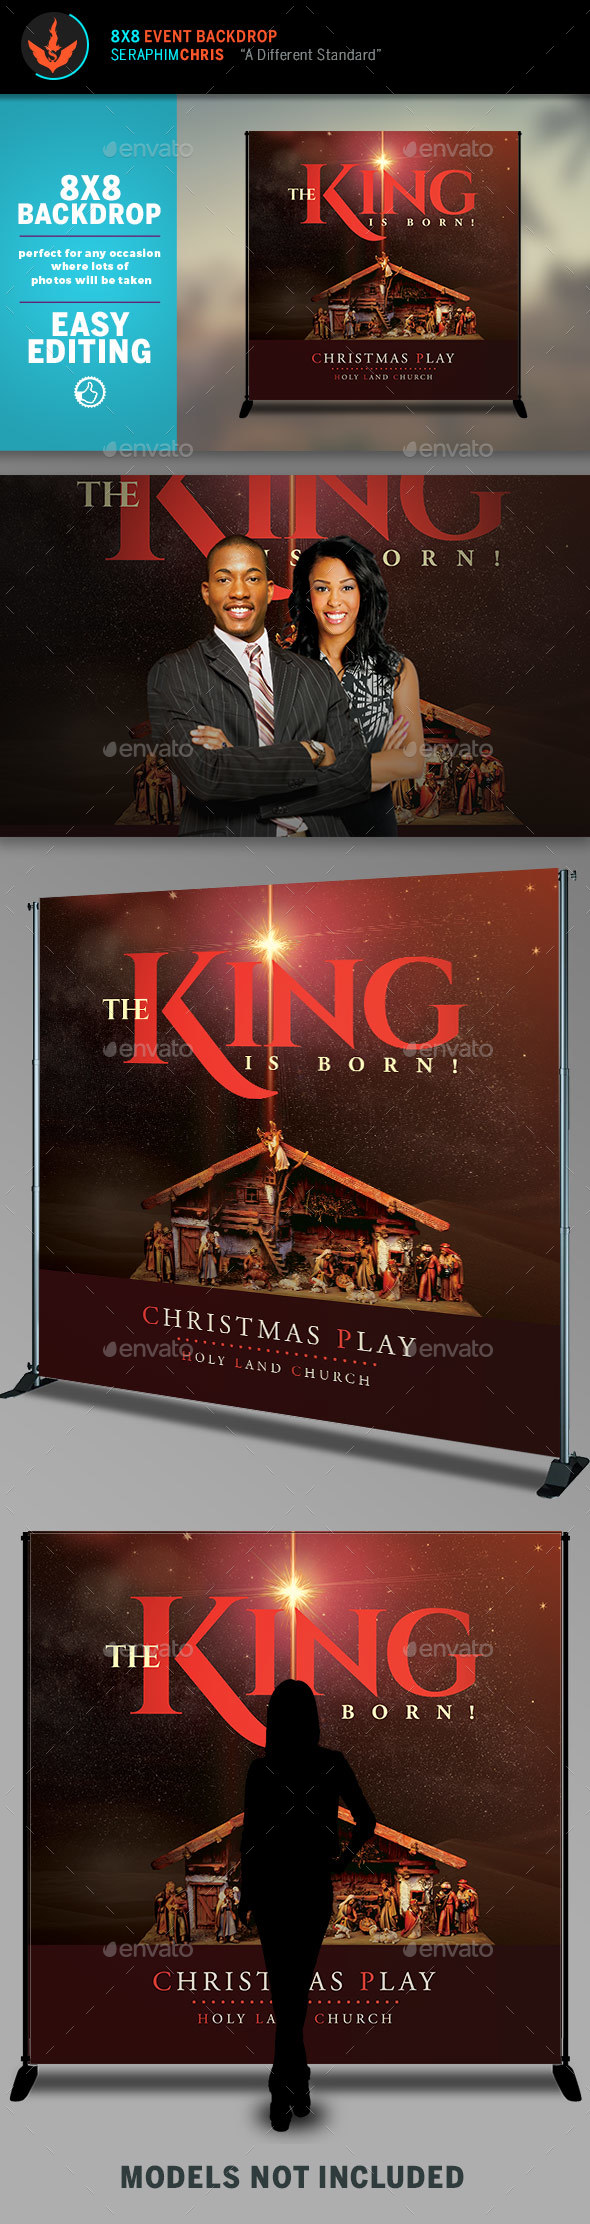 GraphicRiver The King is Born Christmas 8x8 Backdrop Template 20995784